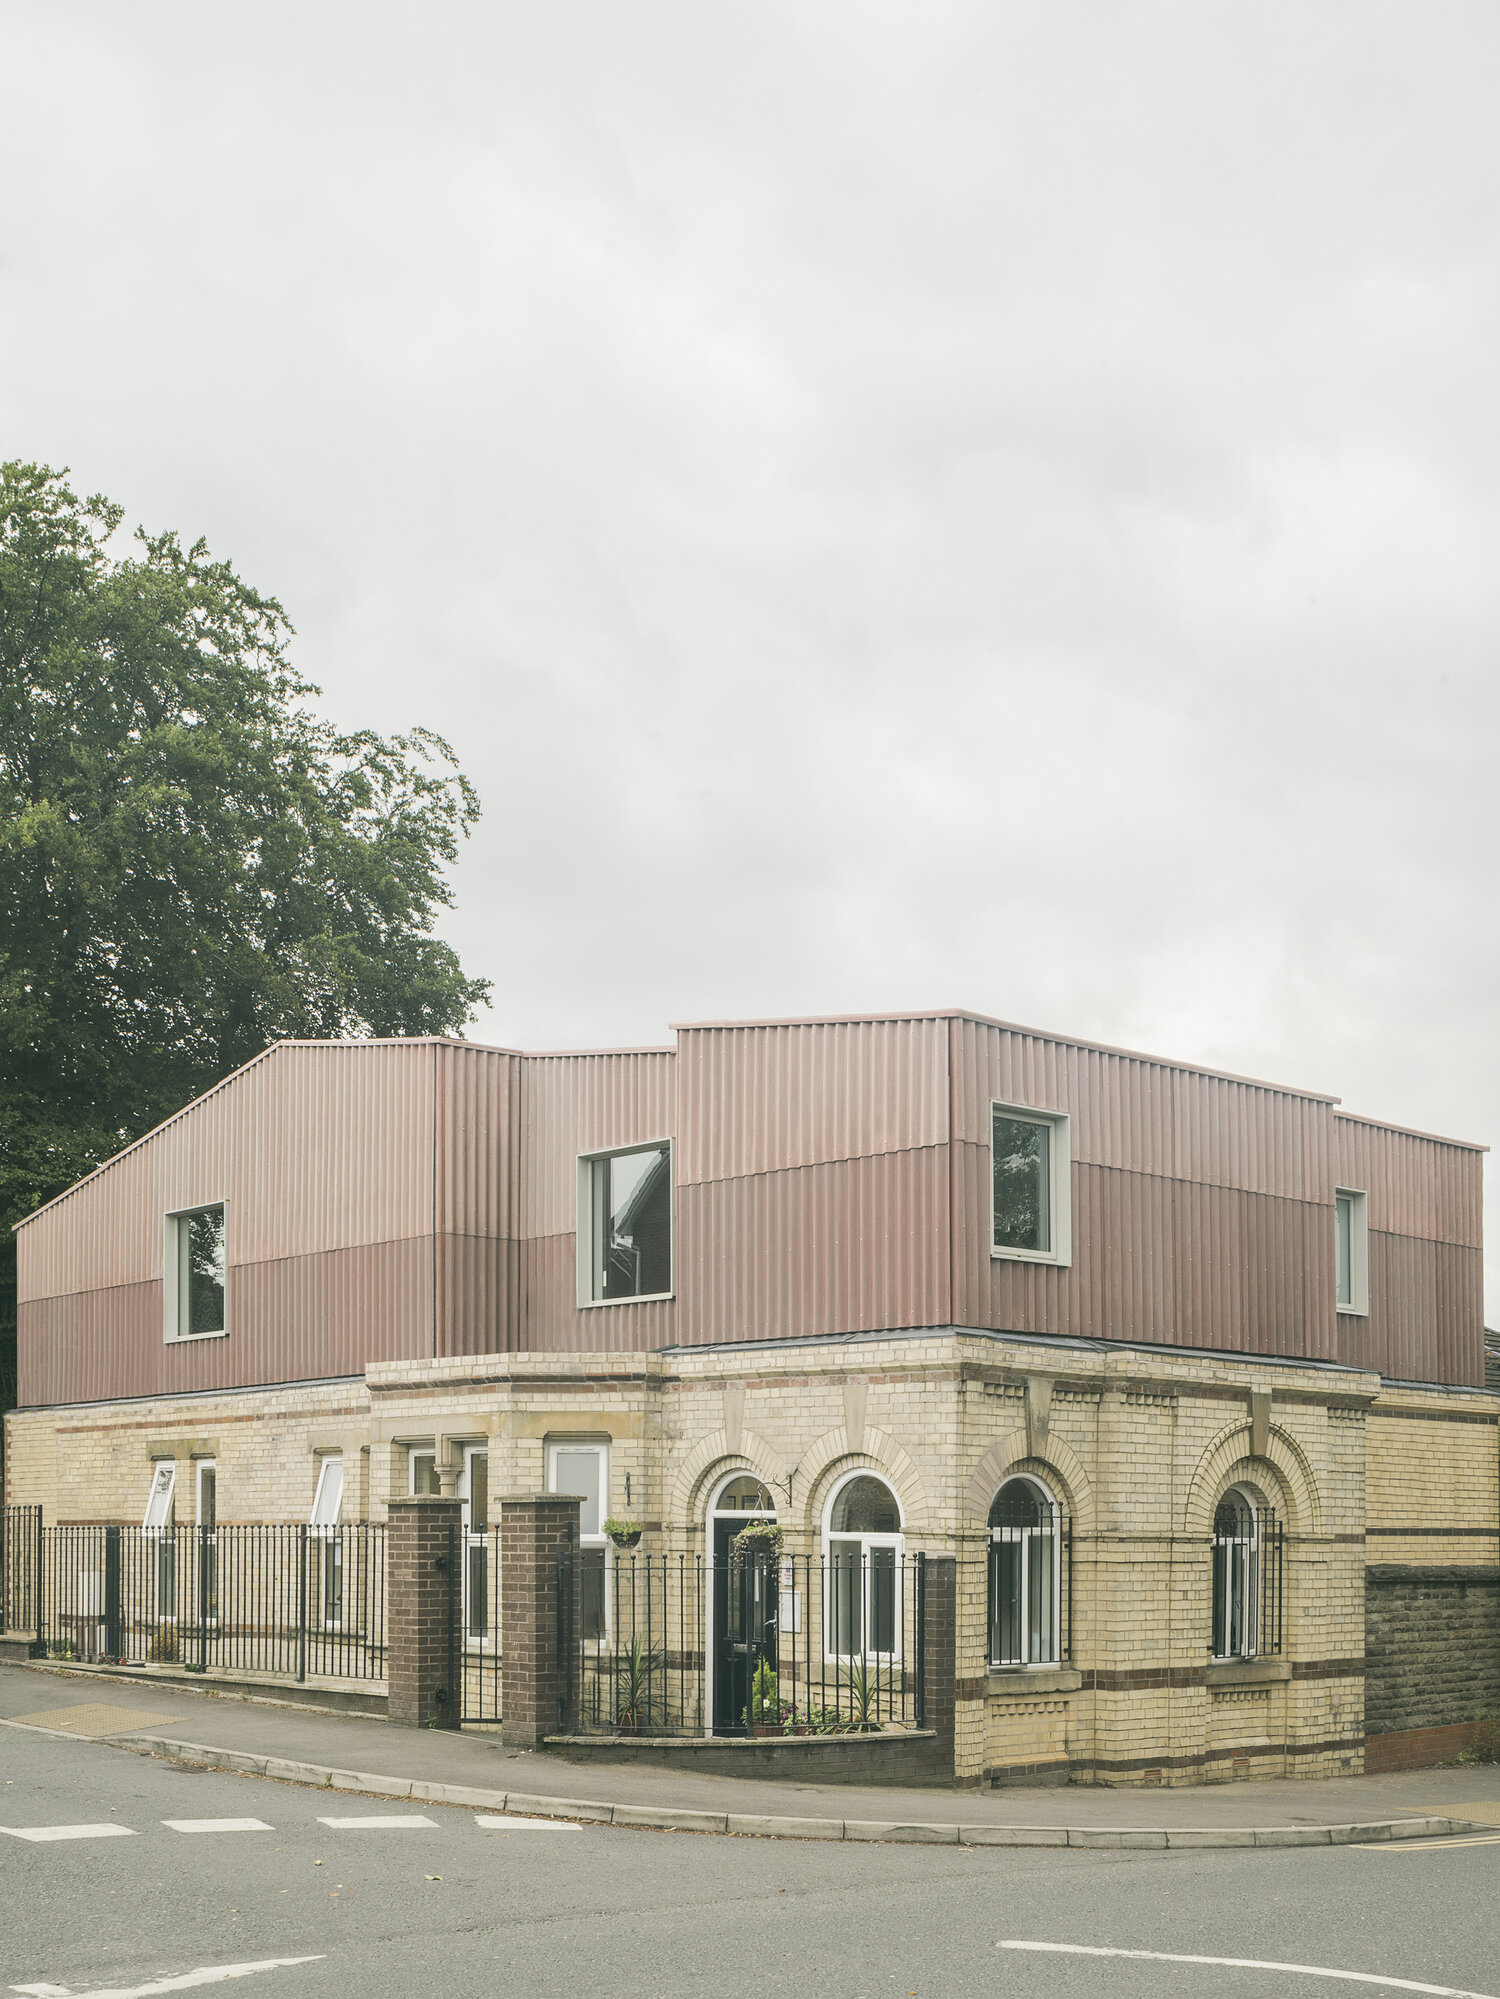 Pre-school, Manchester, EBBA Architects 2019 Photo: Lorenzo Zandri (FTHo RENOVATION by EBBA ARCHITECTS 2)